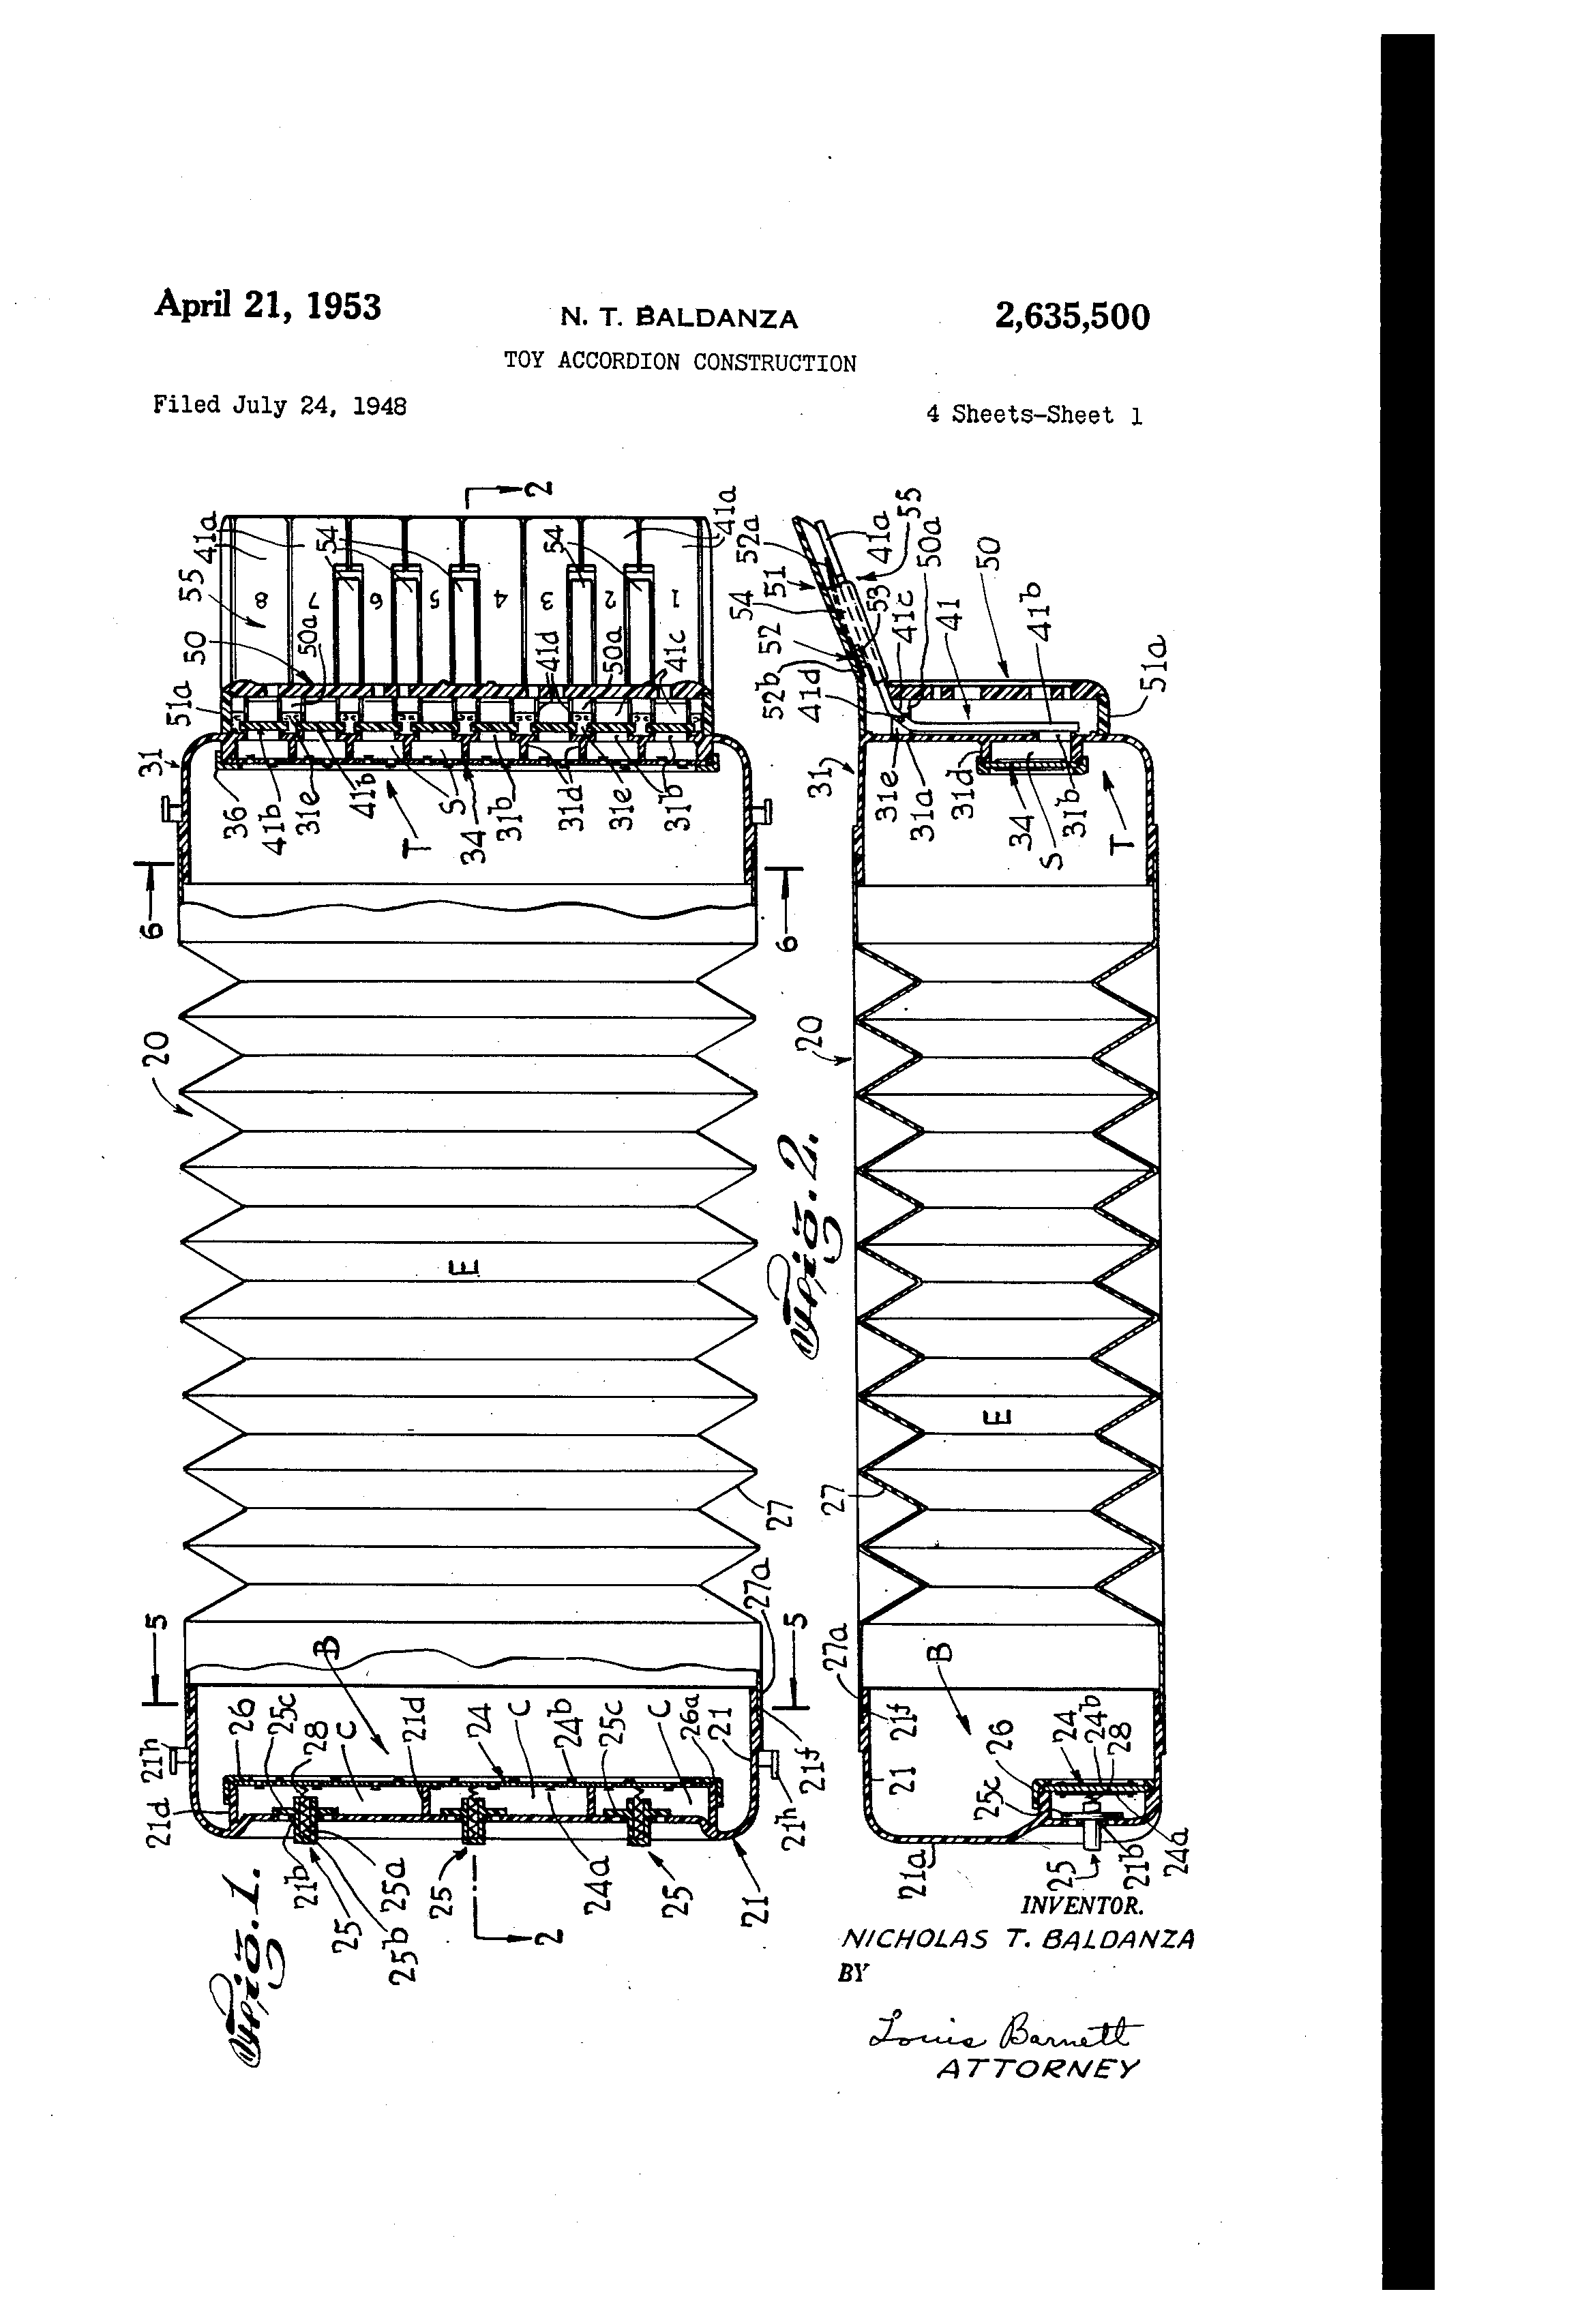 Patent us2635500 toy accordion construction google patents patent drawing hexwebz Choice Image